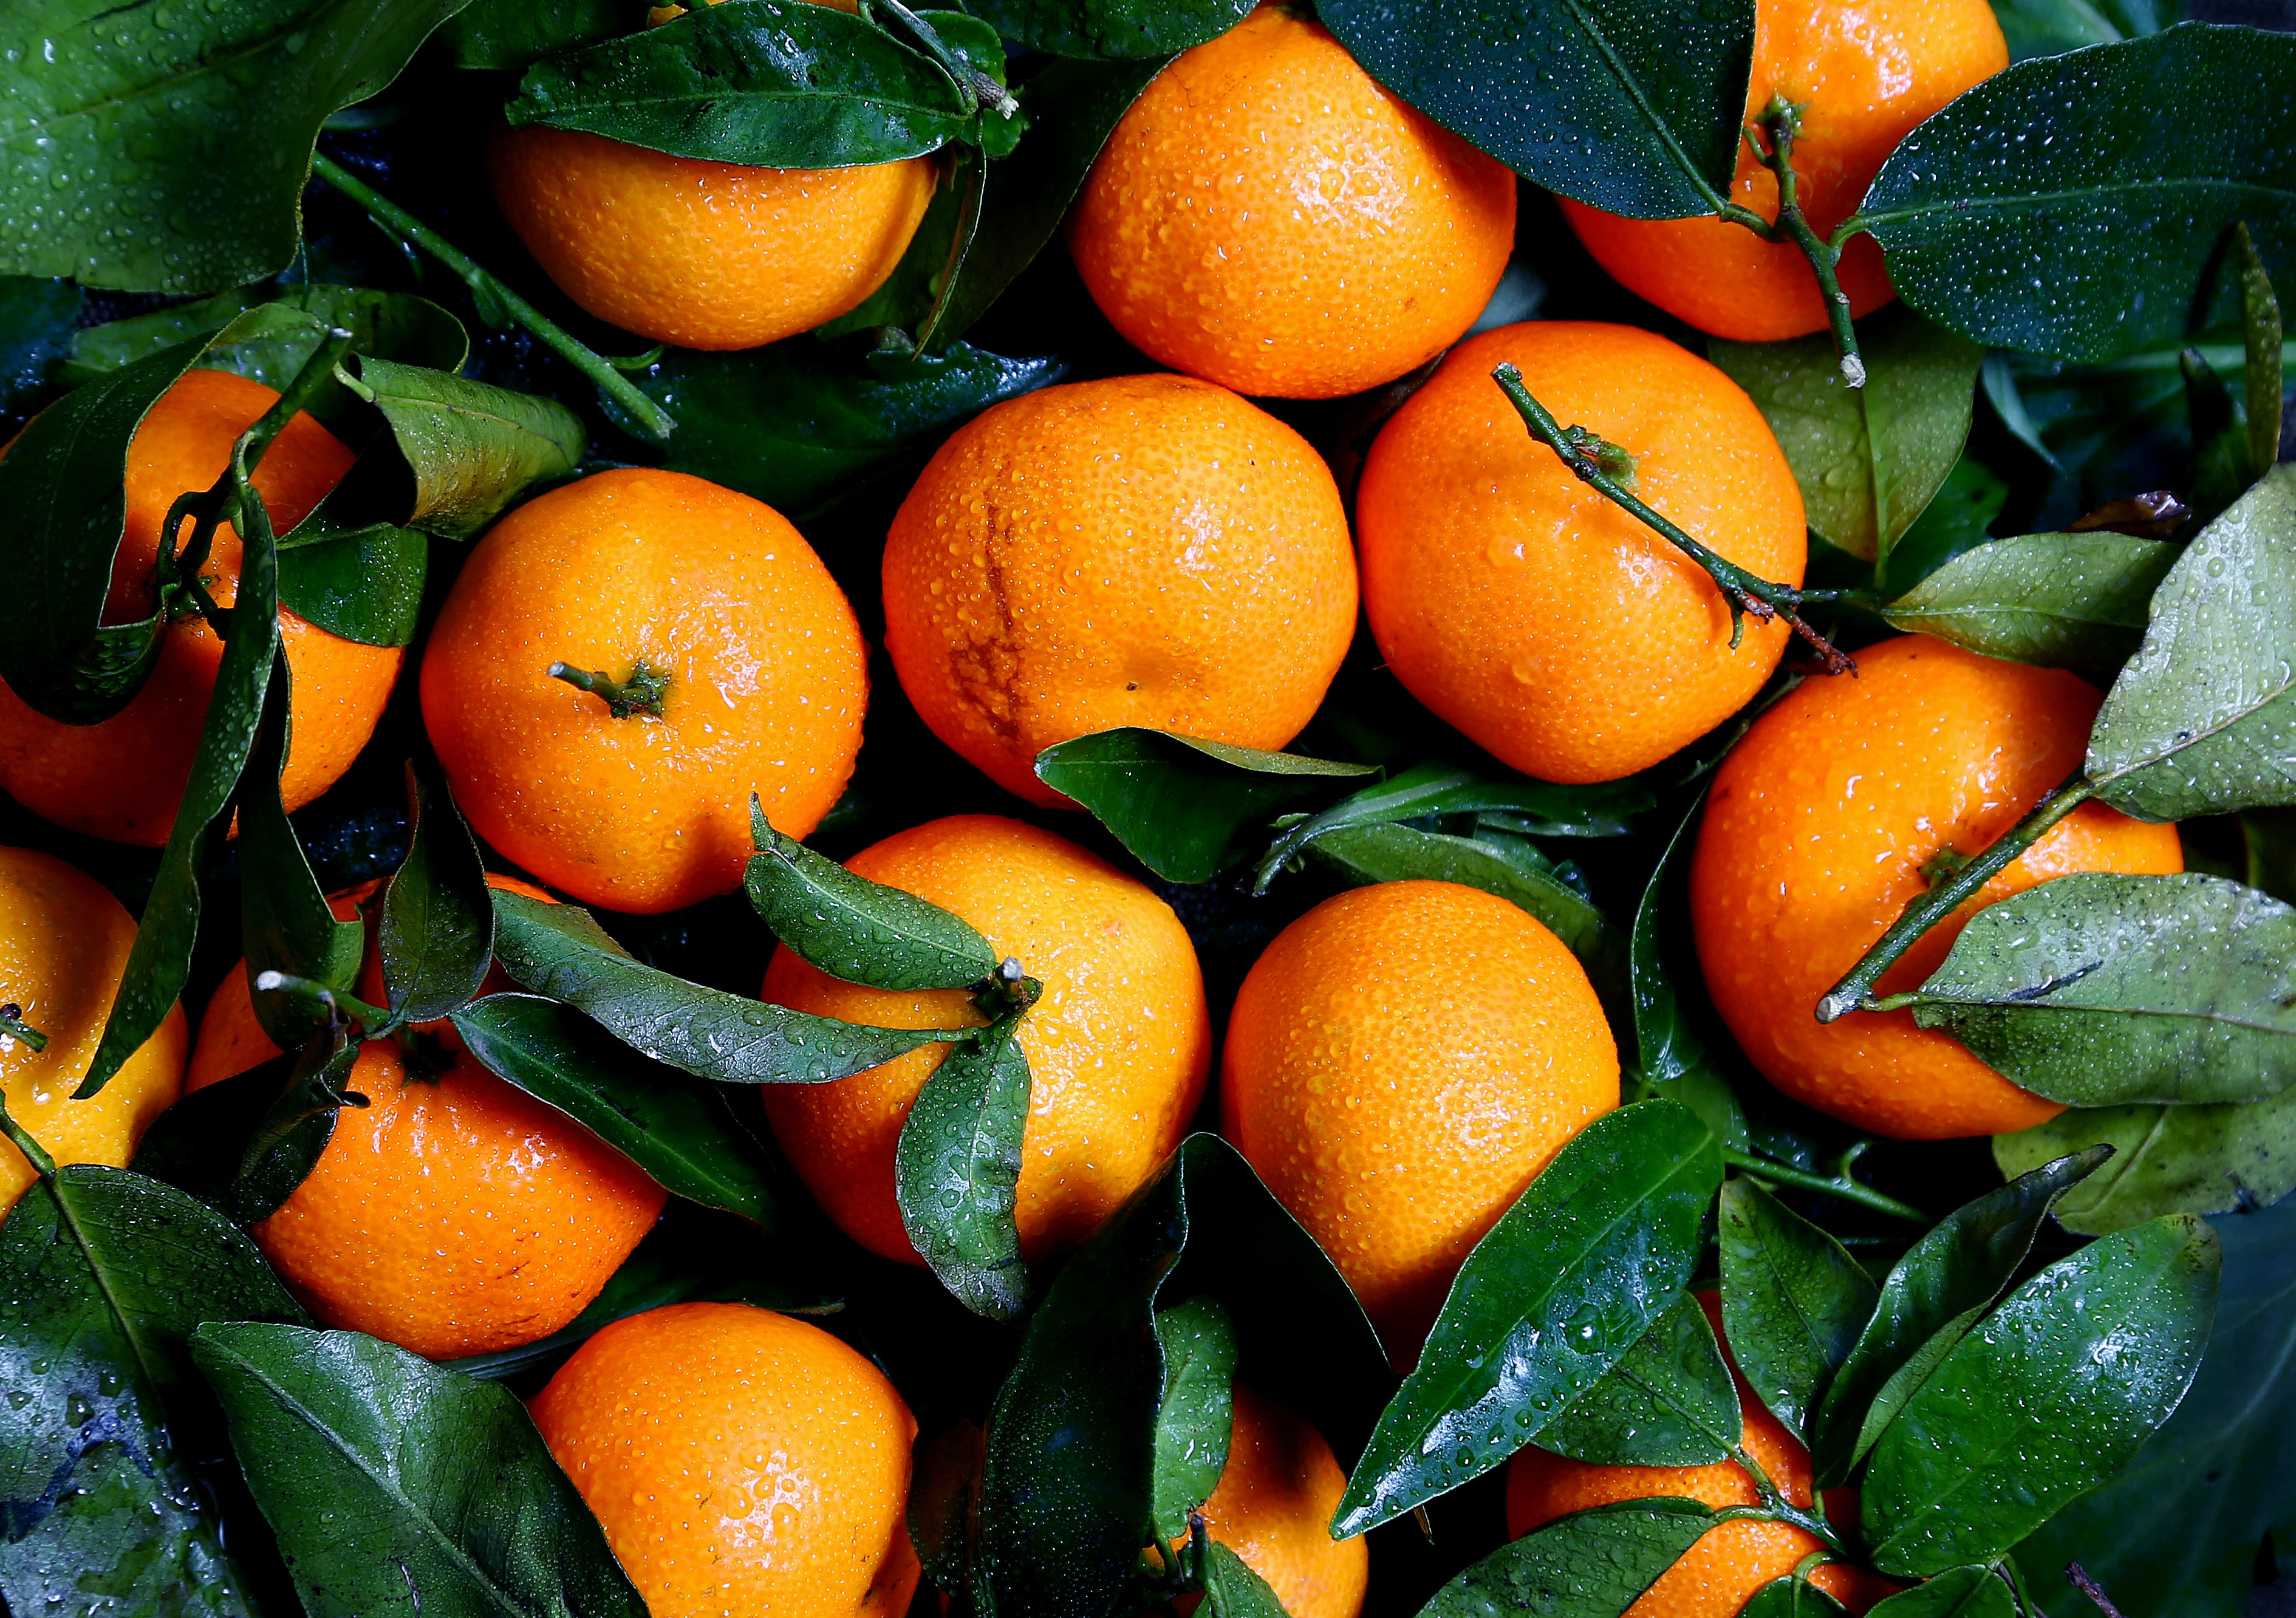 Washed oranges and green leaves freshly picked